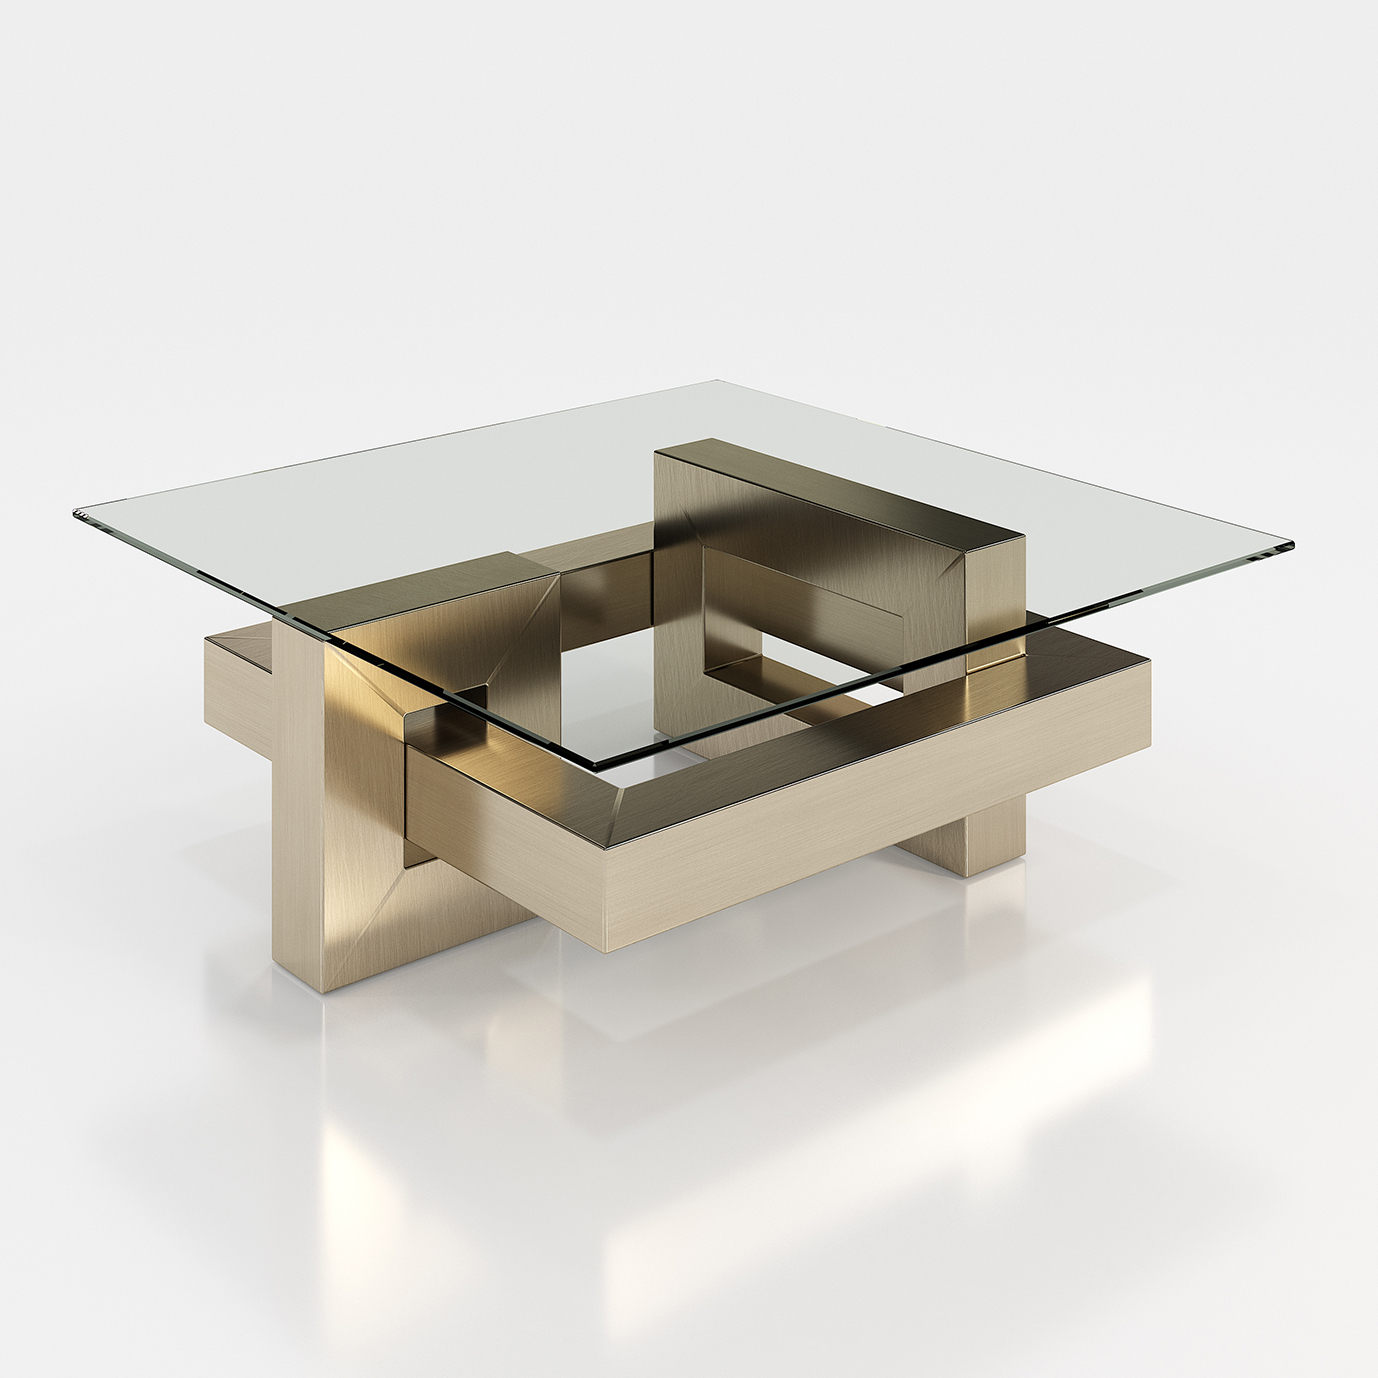 Favorite Flat Black And Cobre Coffee Tables For ▷ Coffee Tables: The Perfect Complement To The Hall ® (View 5 of 20)